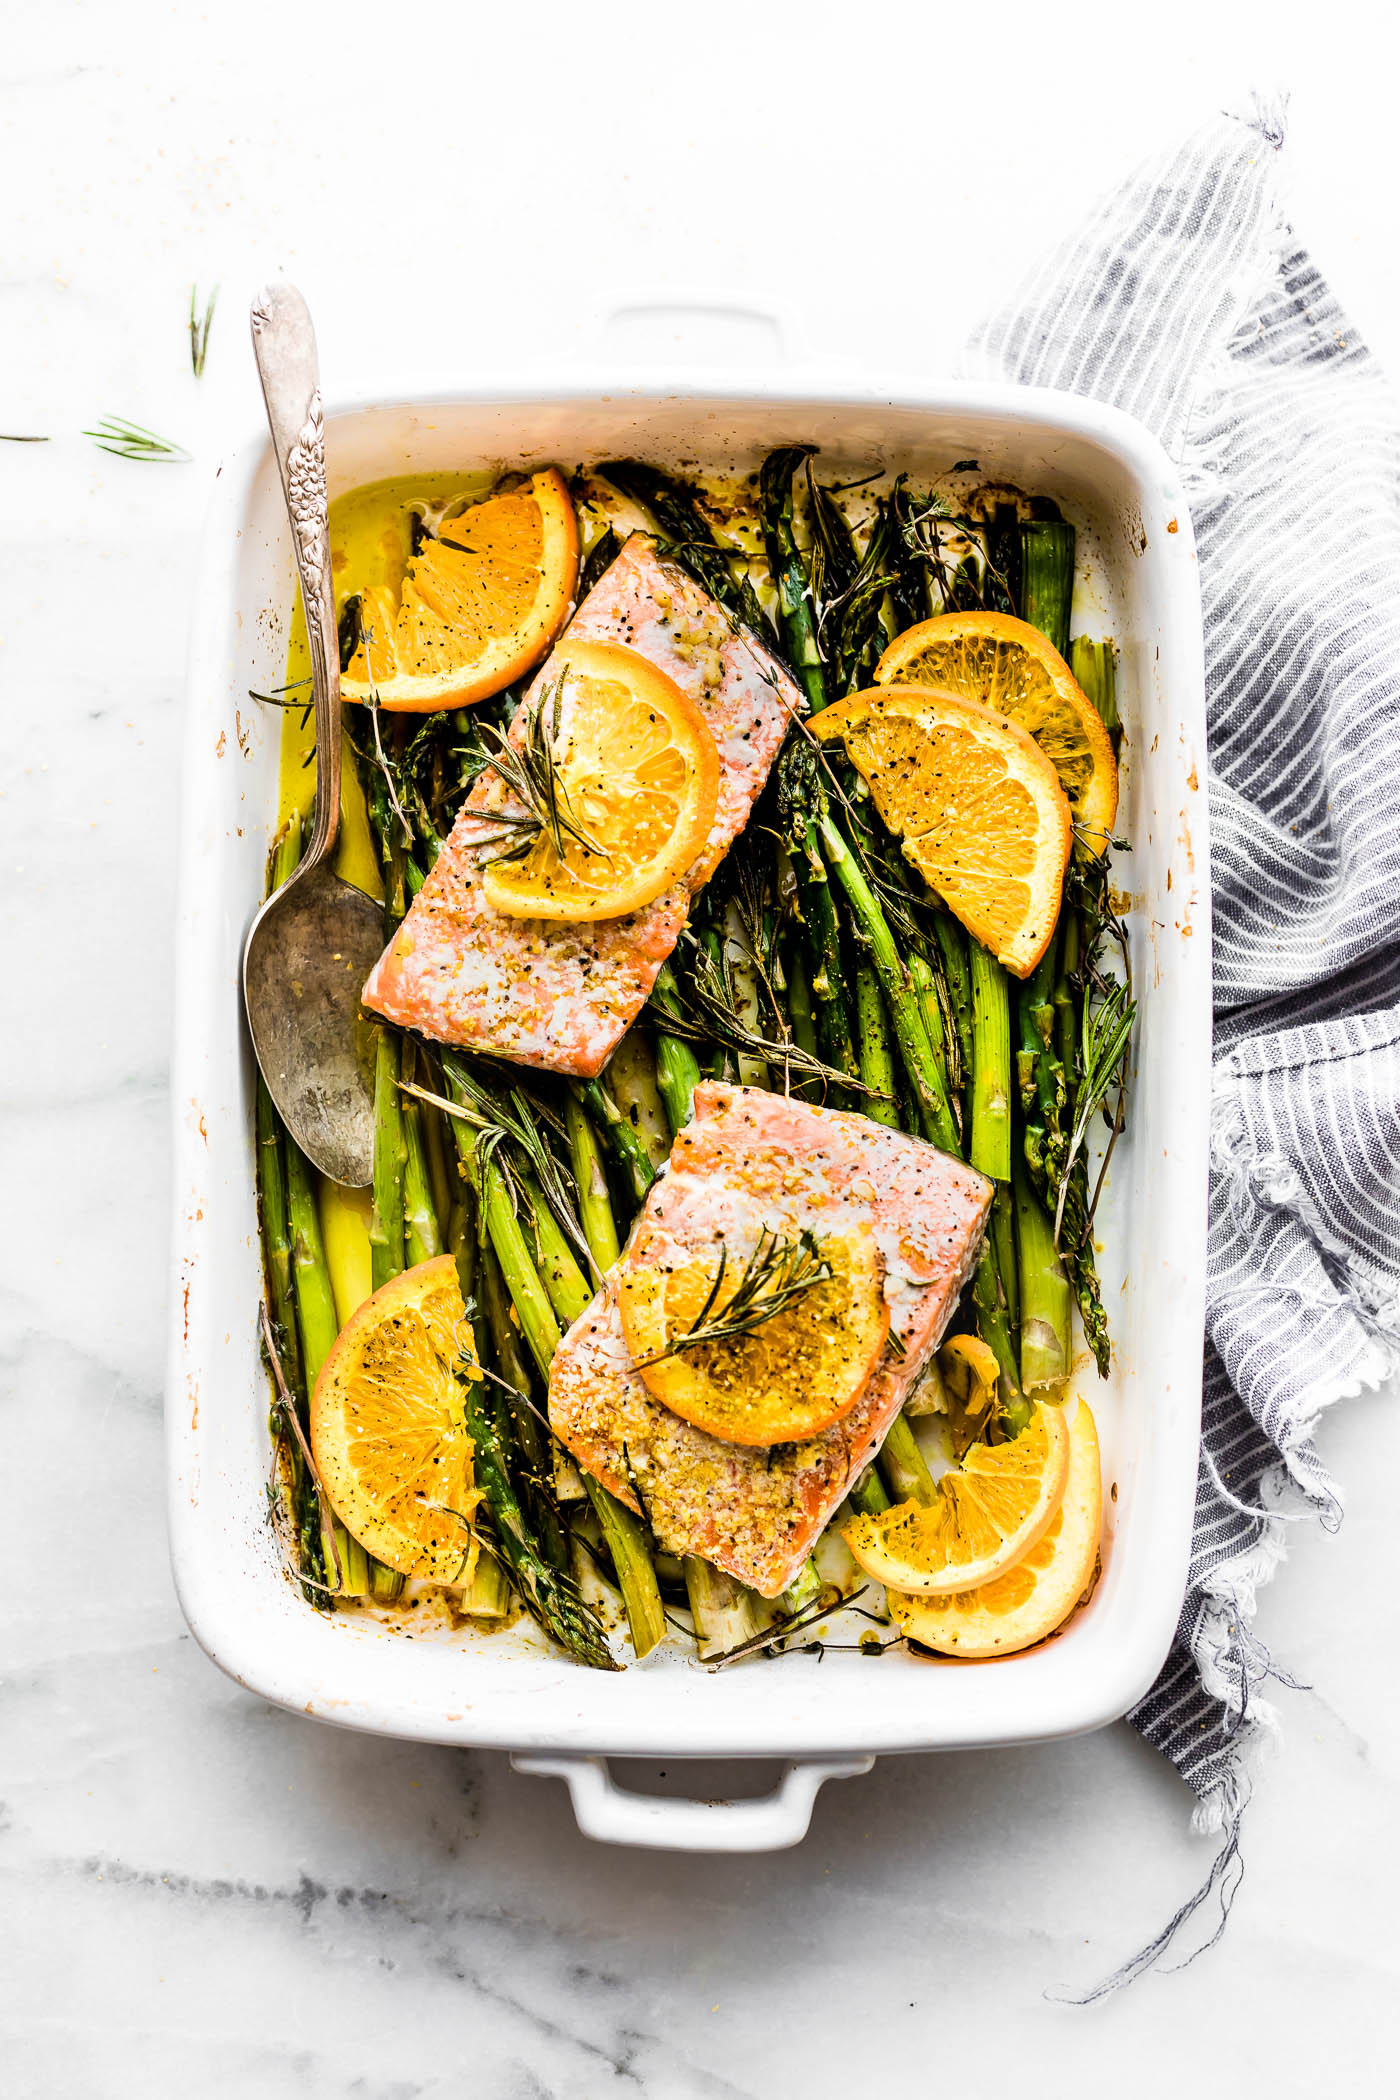 Cool Mom Eats weekly meal plan: Rosemary Orange One Pan Baked Salmon at Cotter Crunch